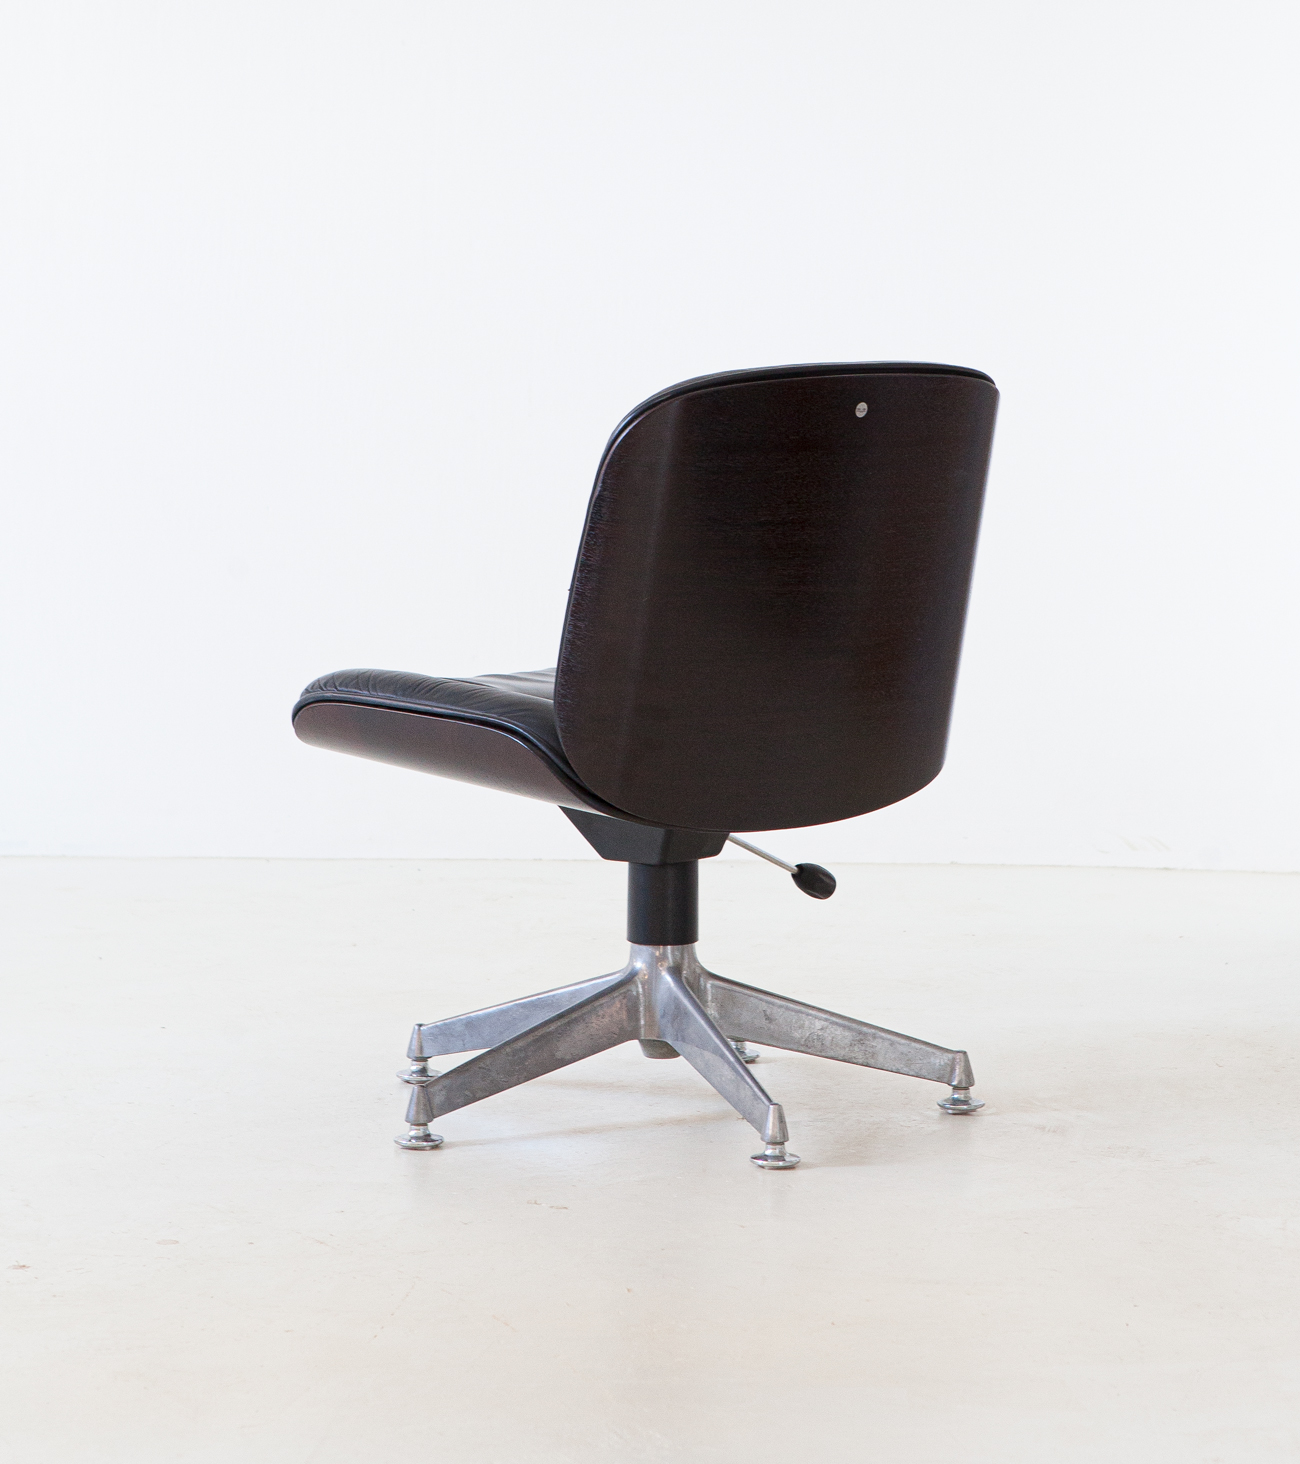 italian-leather-swivel-chair-by-ico-parisi-for-mim-2-se326